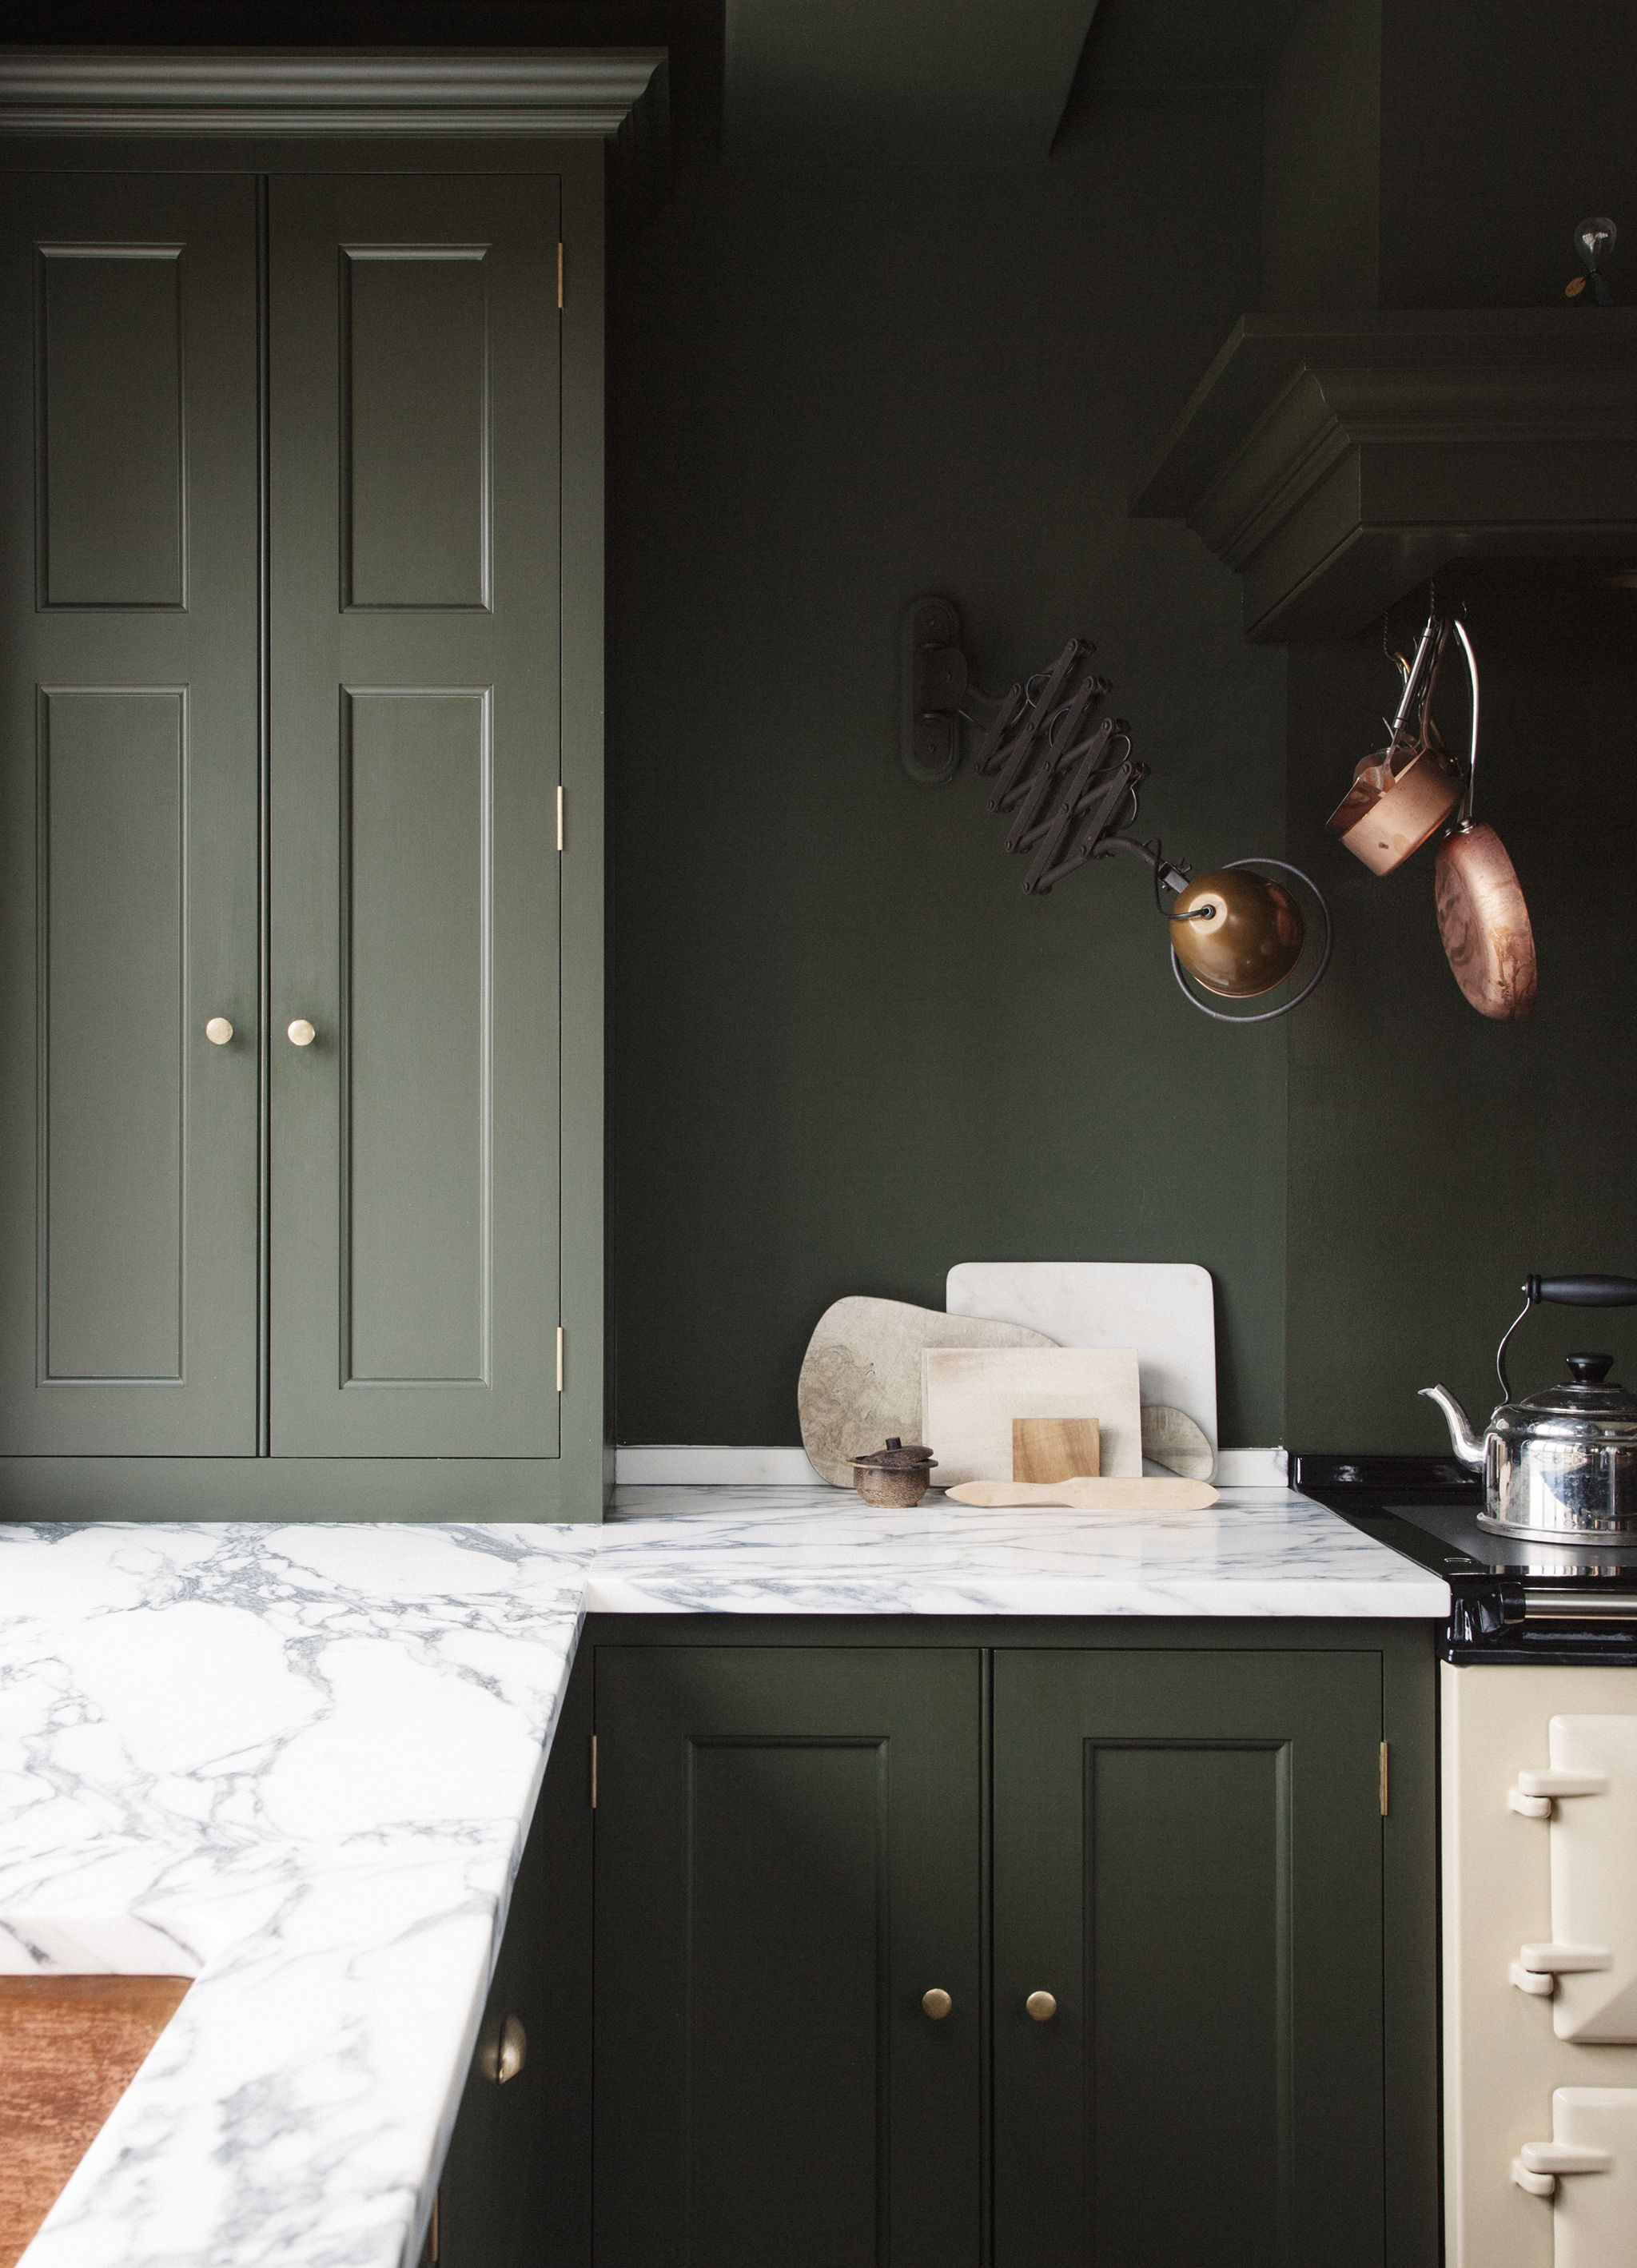 green kitchen and matching wall colour